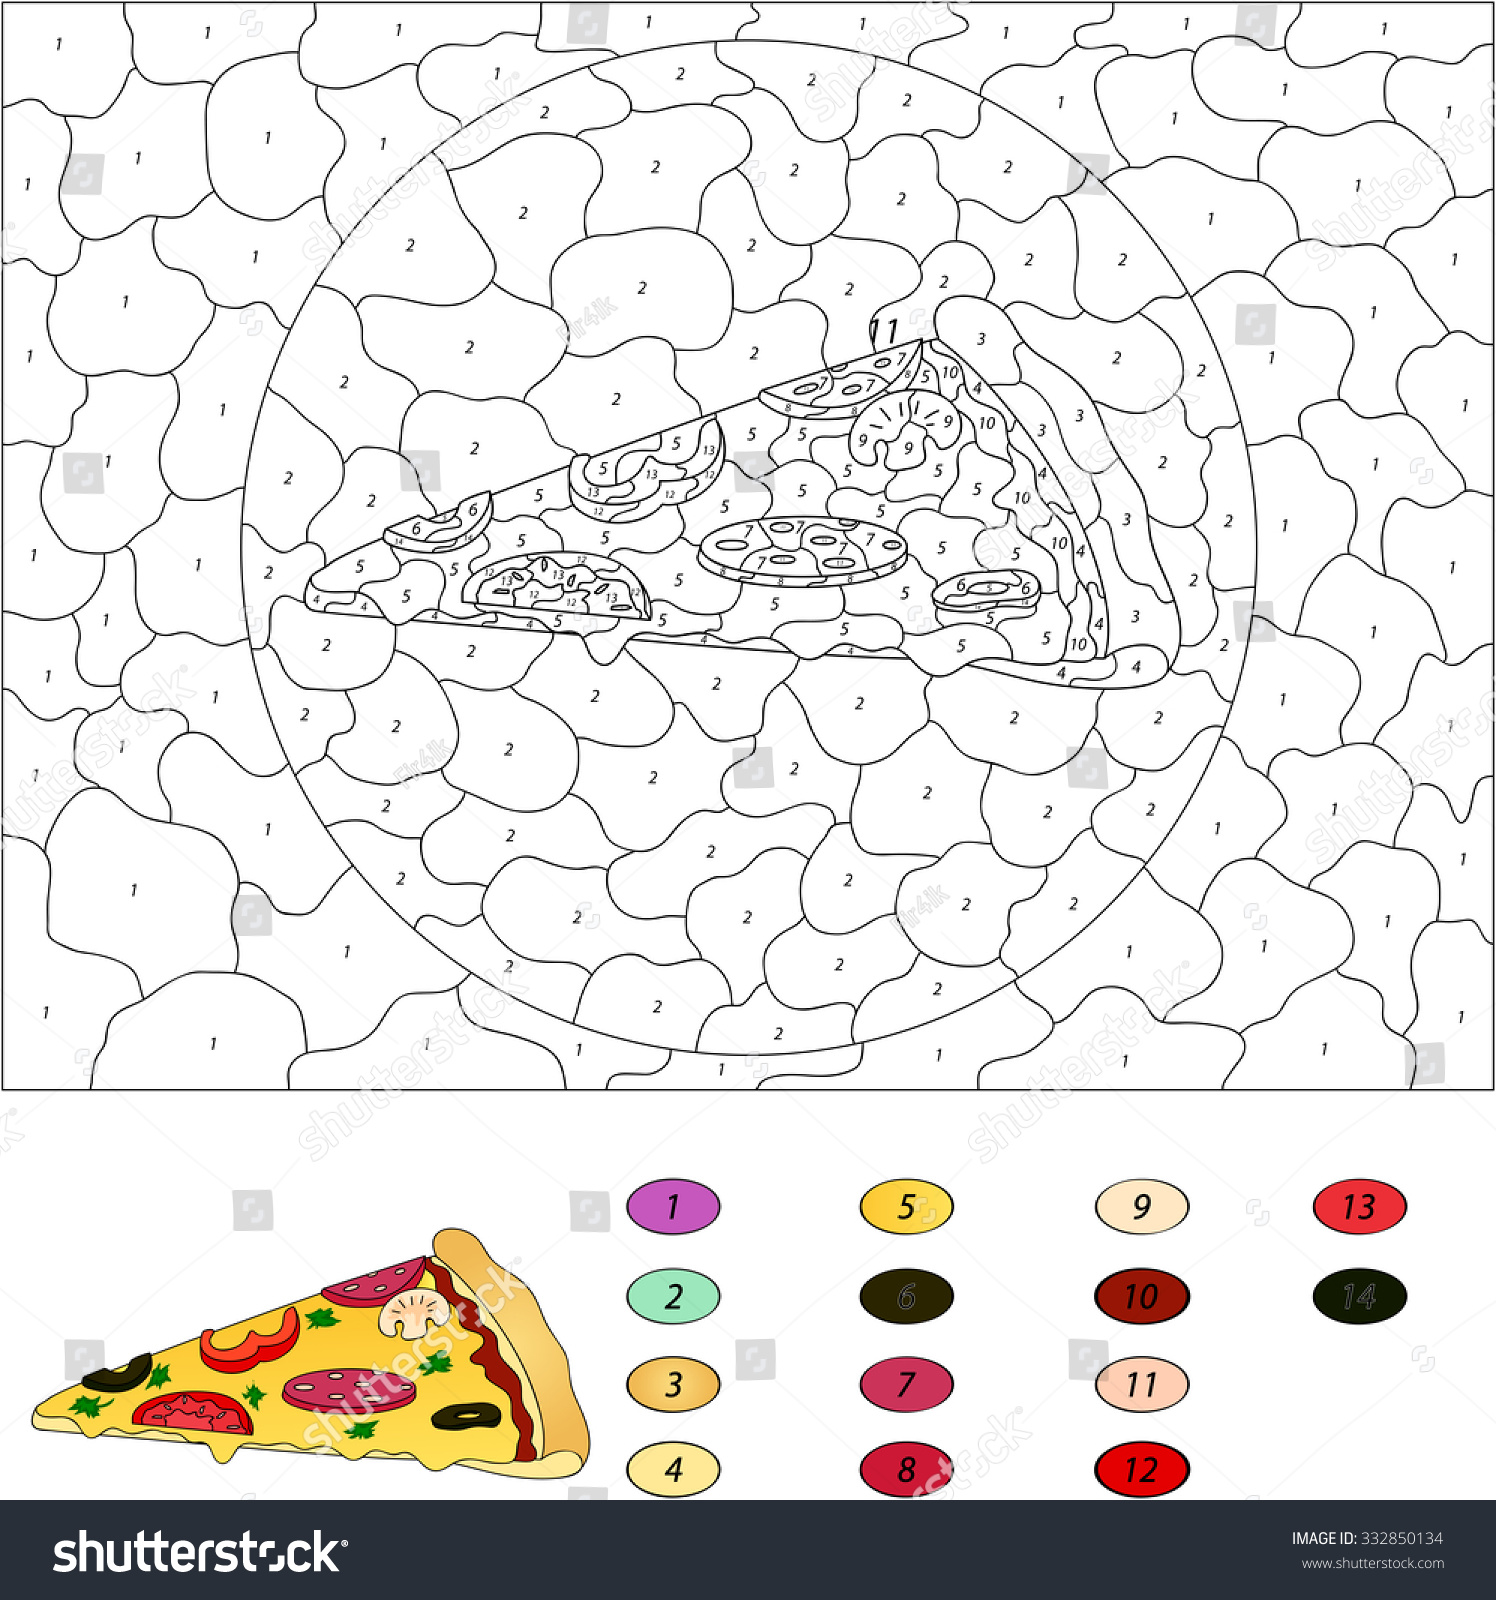 Game color by numbers - Color By Number Educational Game For Kids Pizza With Salami Tomato Mushrooms